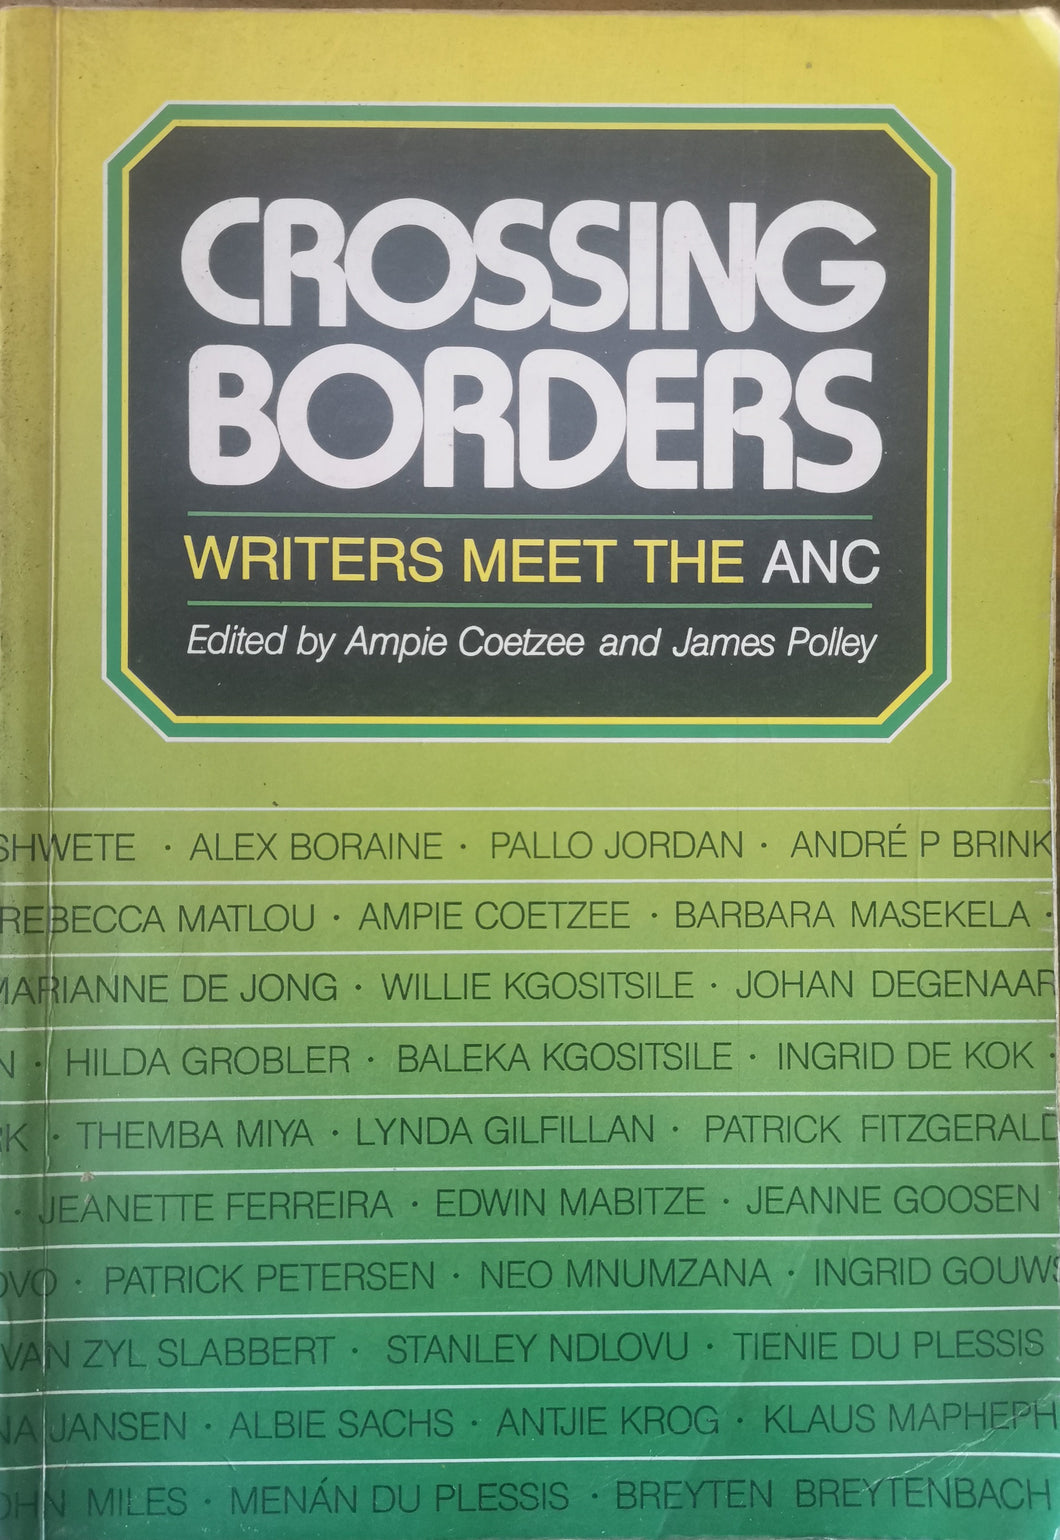 Crossing Borders: Writers meet the ANC - edited by Ampie Coetzee and James Polley